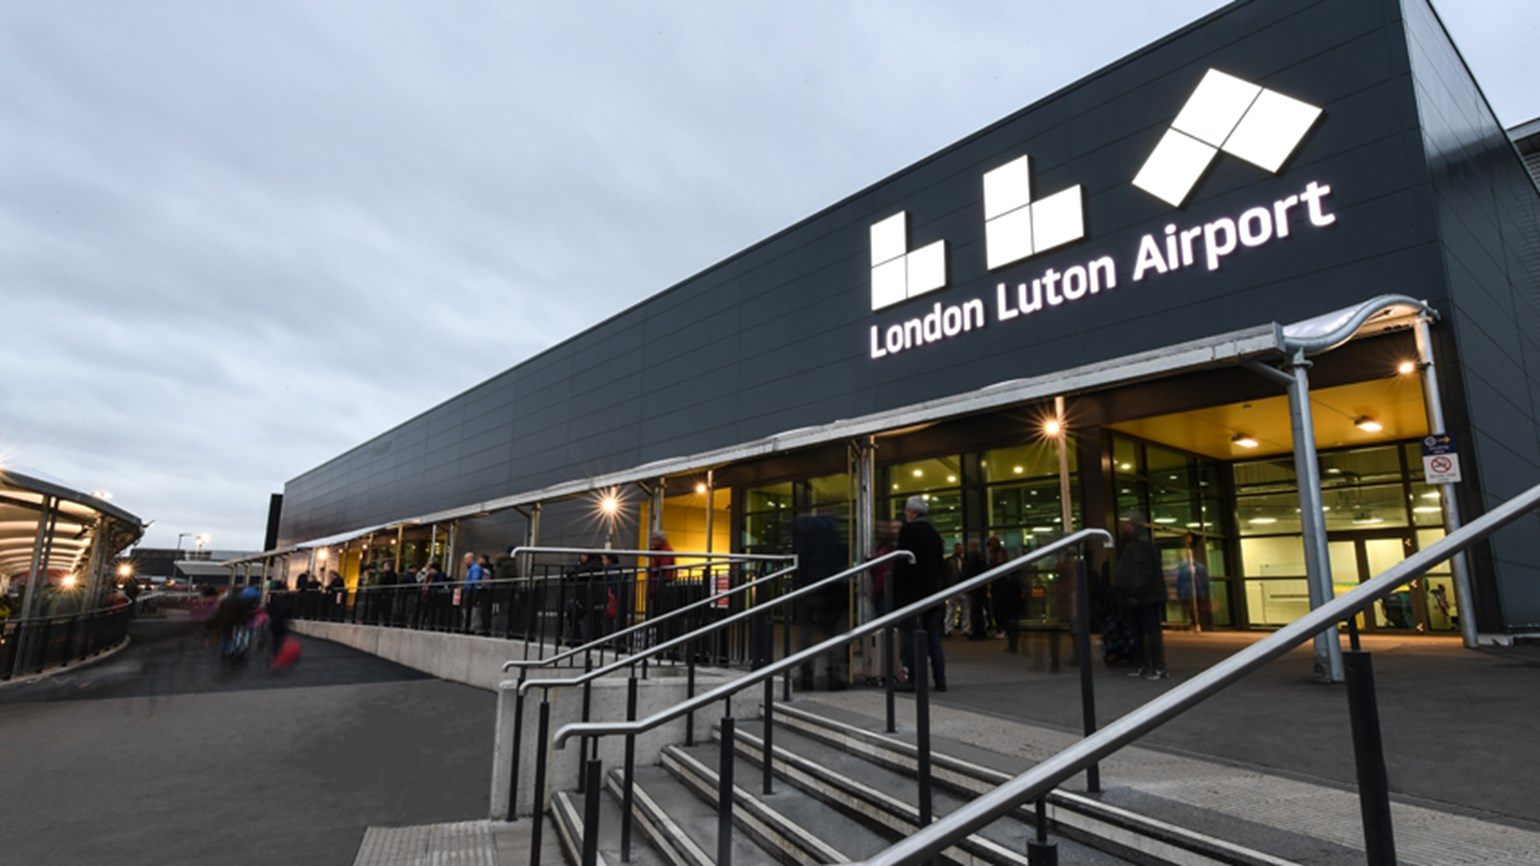 Luton airport entrance